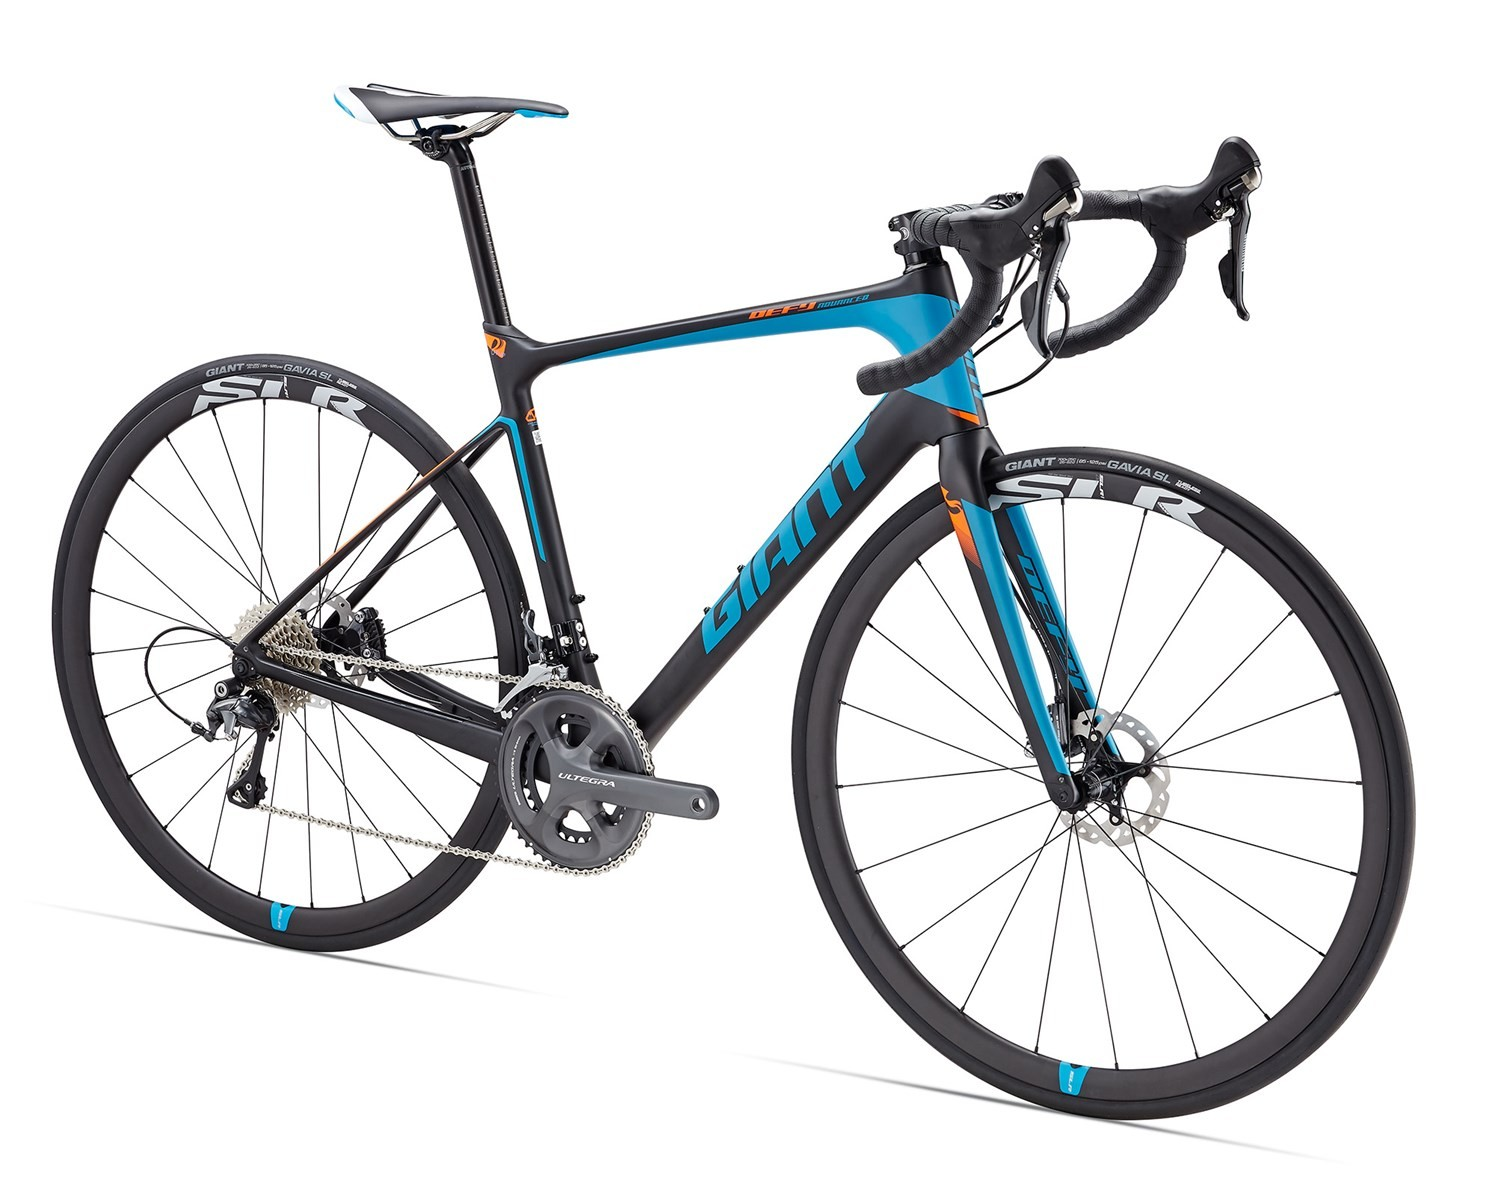 Giant Defy Advanced Pro 1 in Carbon/Blue £2,029.30